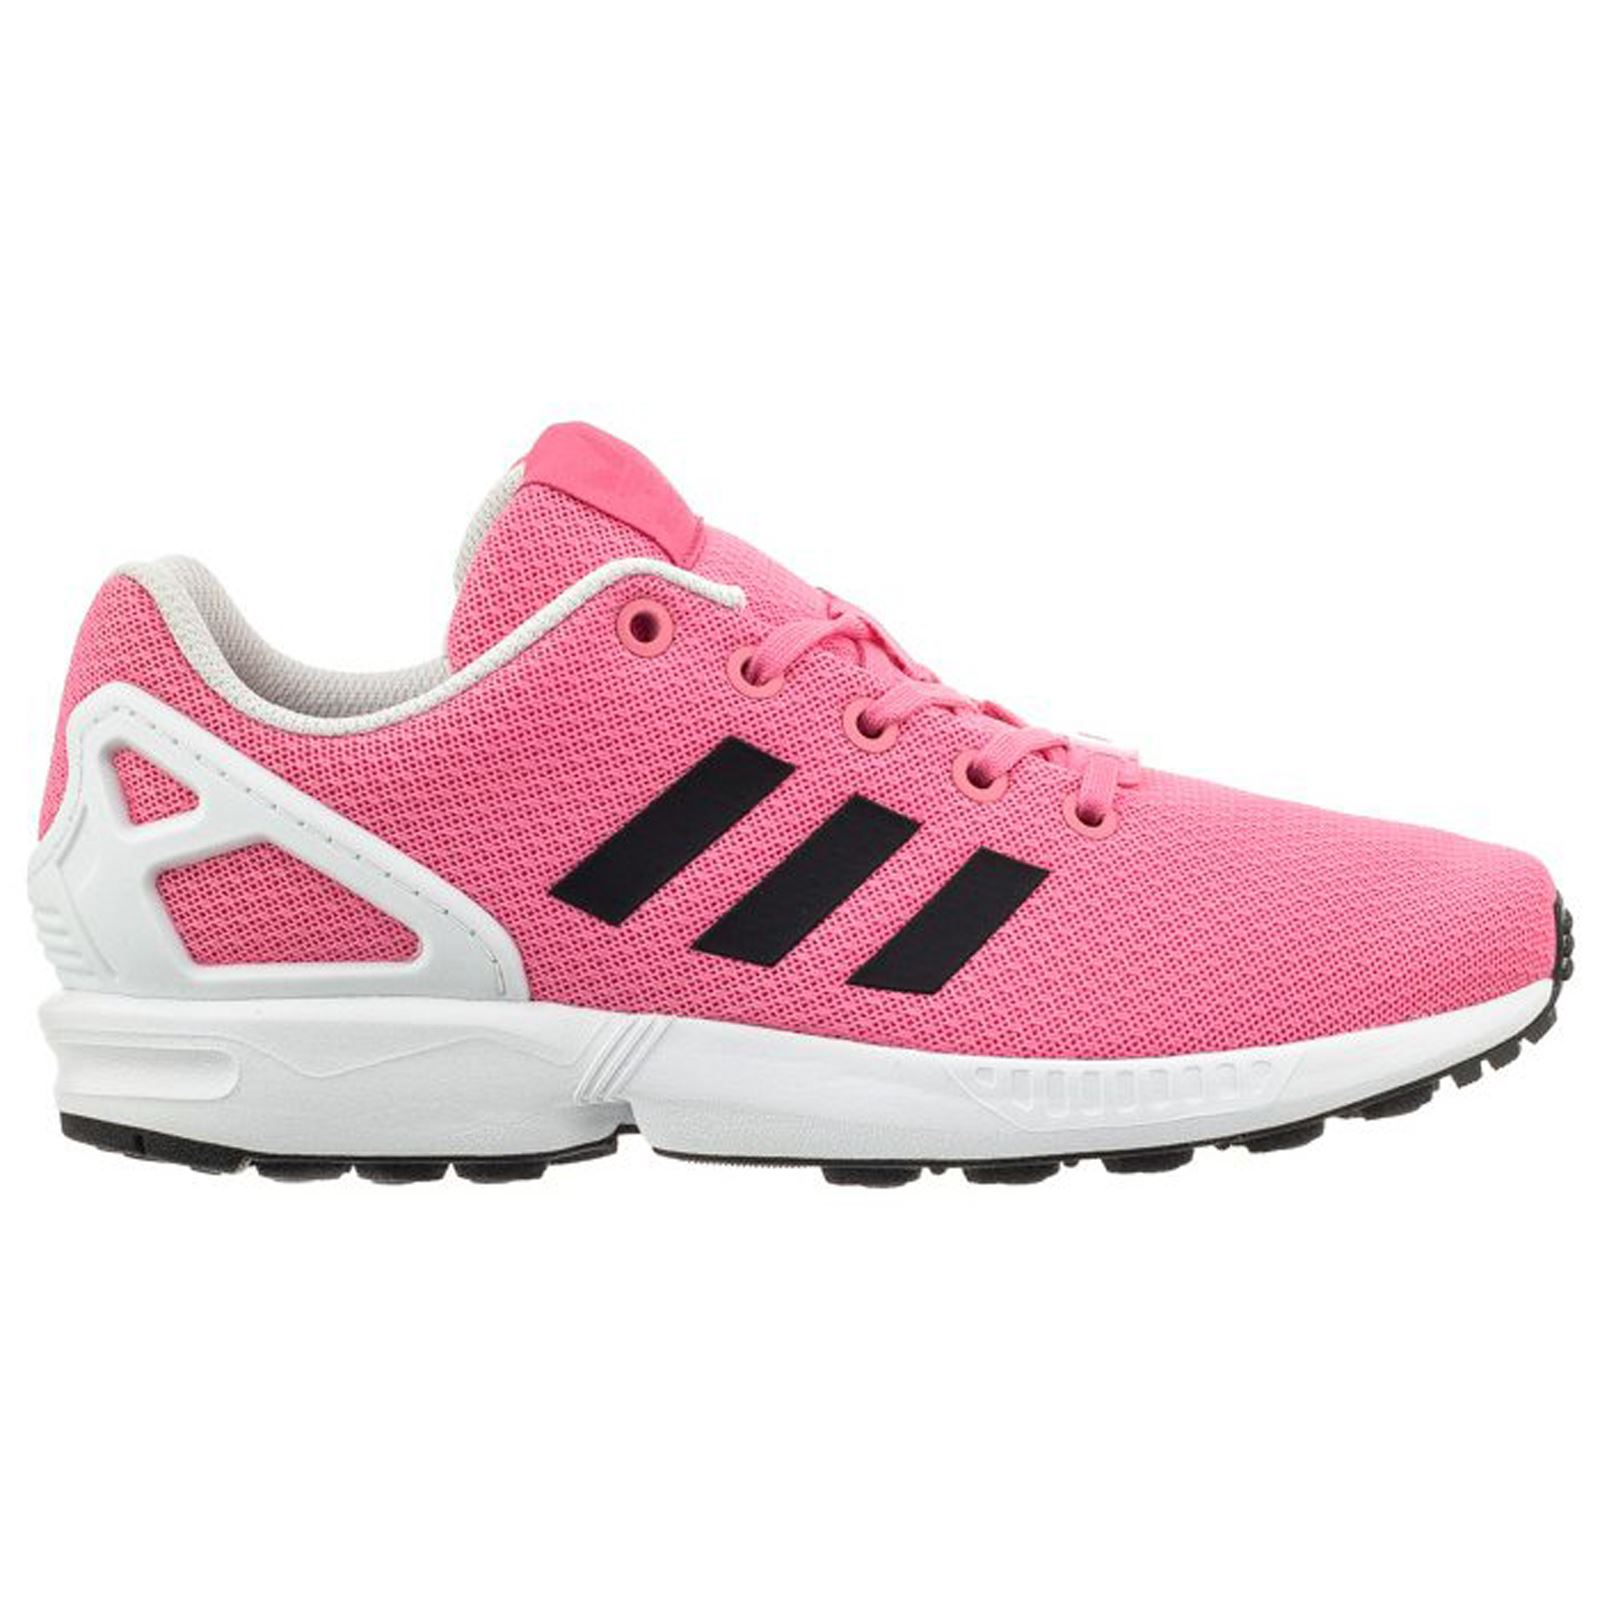 8deb38c51480 Adidas ZX Flux Pink Kids Low Top Trainers